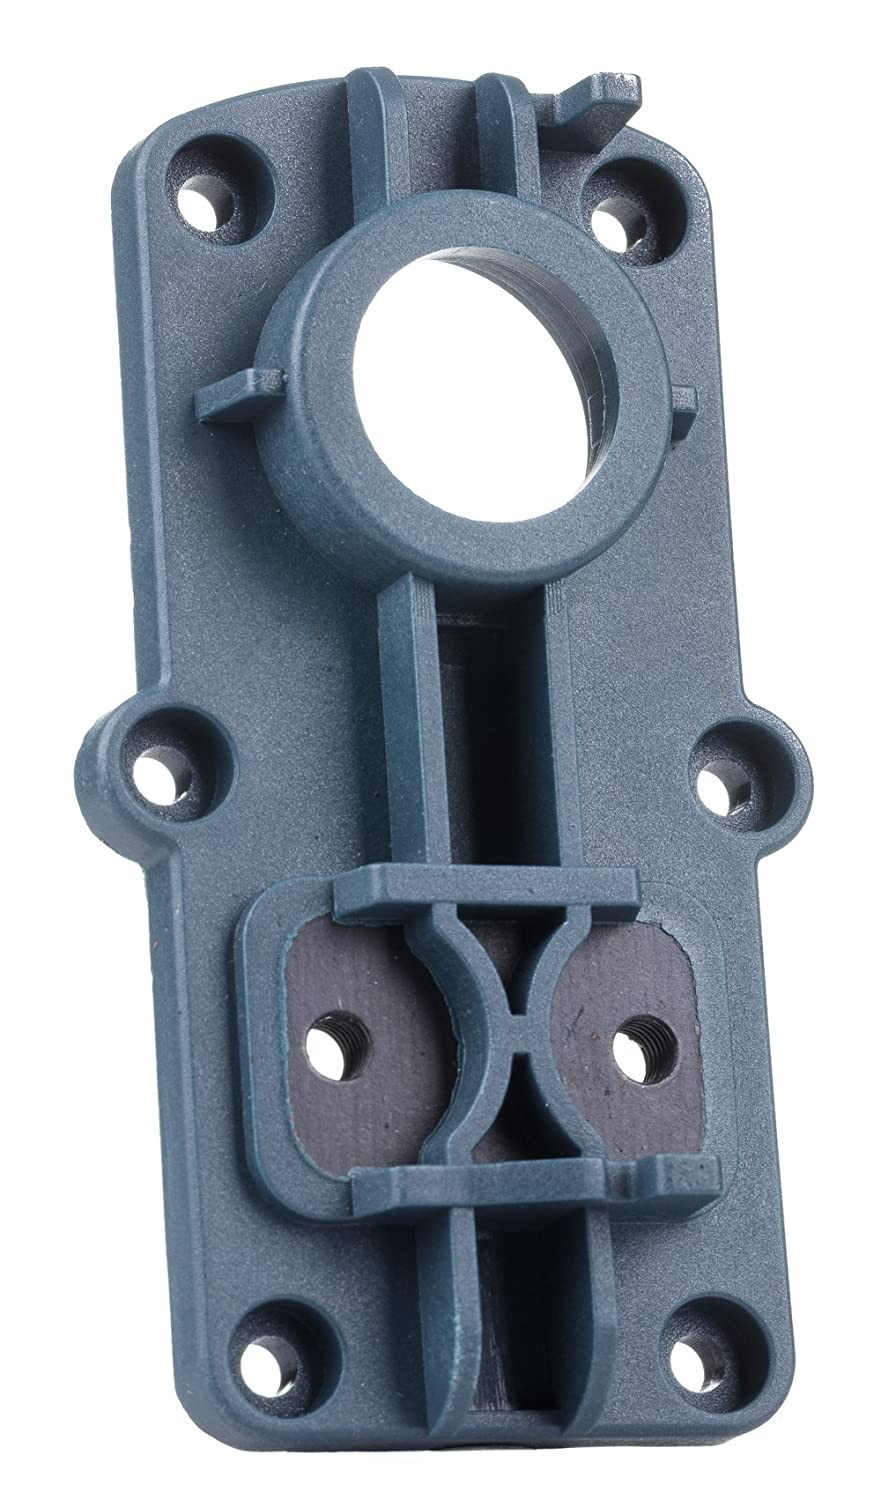 Bosch Parts 2610013527 Cover Plate